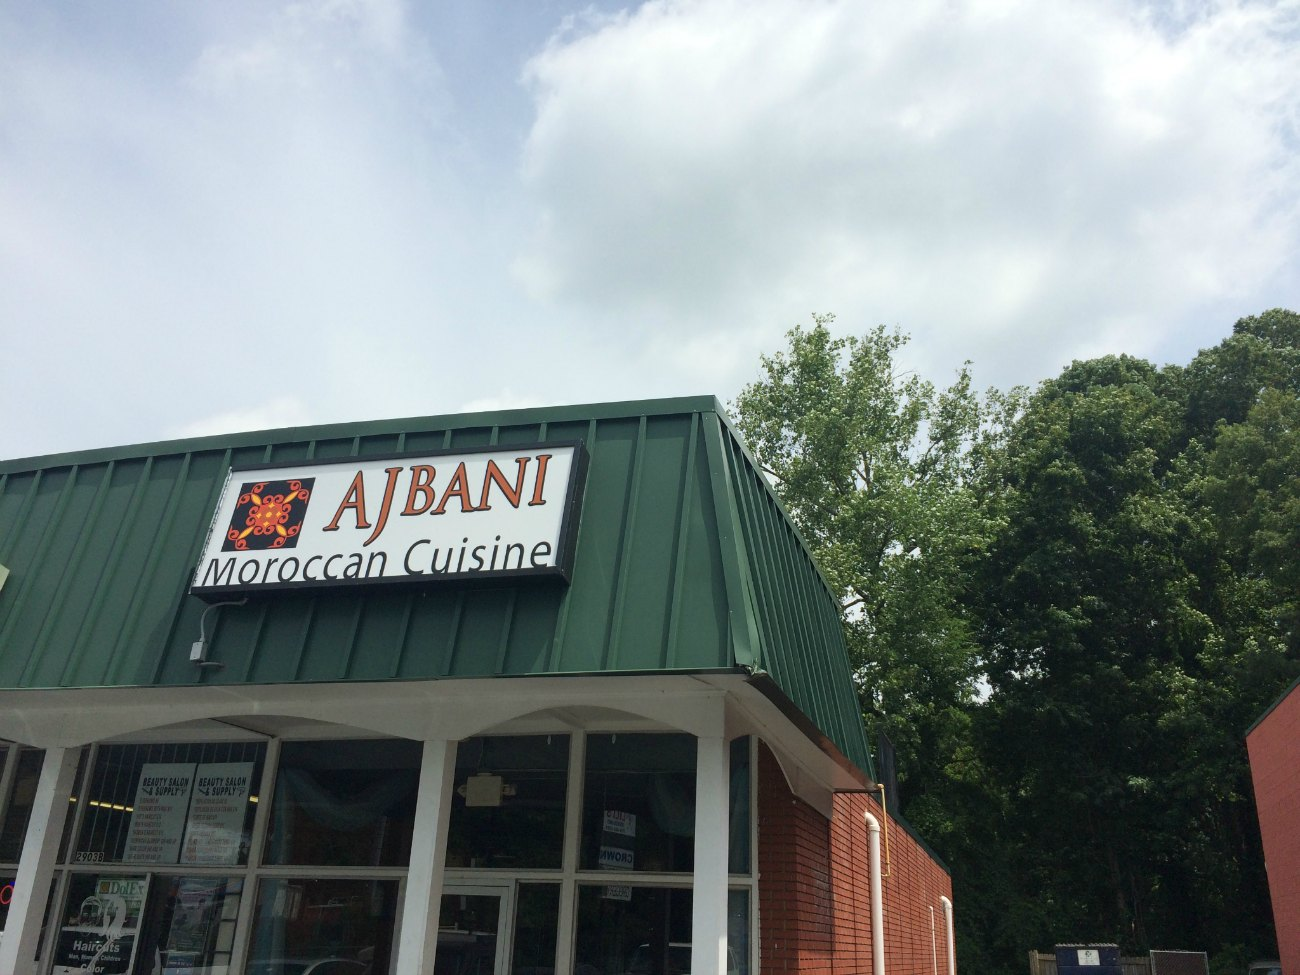 Ajbani Moroccan Cuisine is now open in Plaza Midwood and they mean business with their falafel